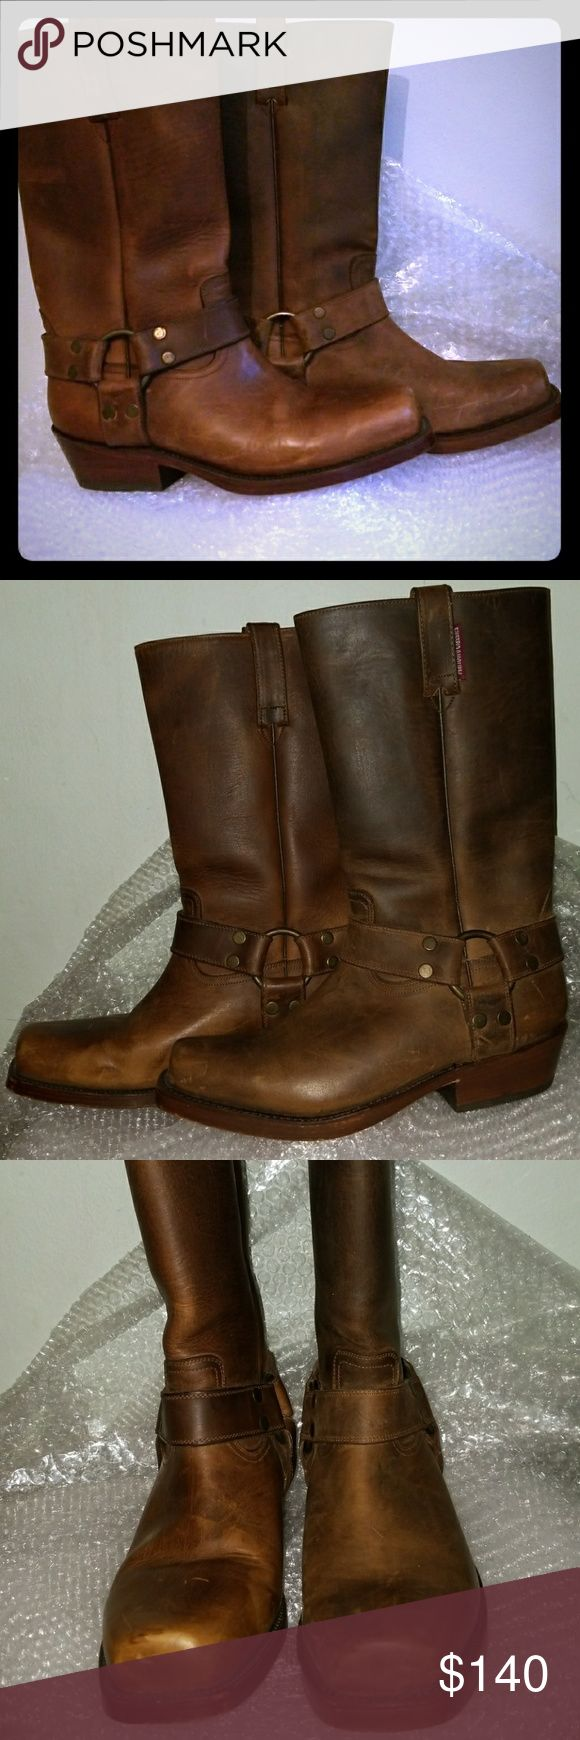 Marlboro Classics harness boots 41 EE Thick durable leather upper. Side pull tabs. Sturdy heel. Made in Mexico. Marked 41 EE. Heels are resoled. Marlboro Shoes Combat & Moto Boots